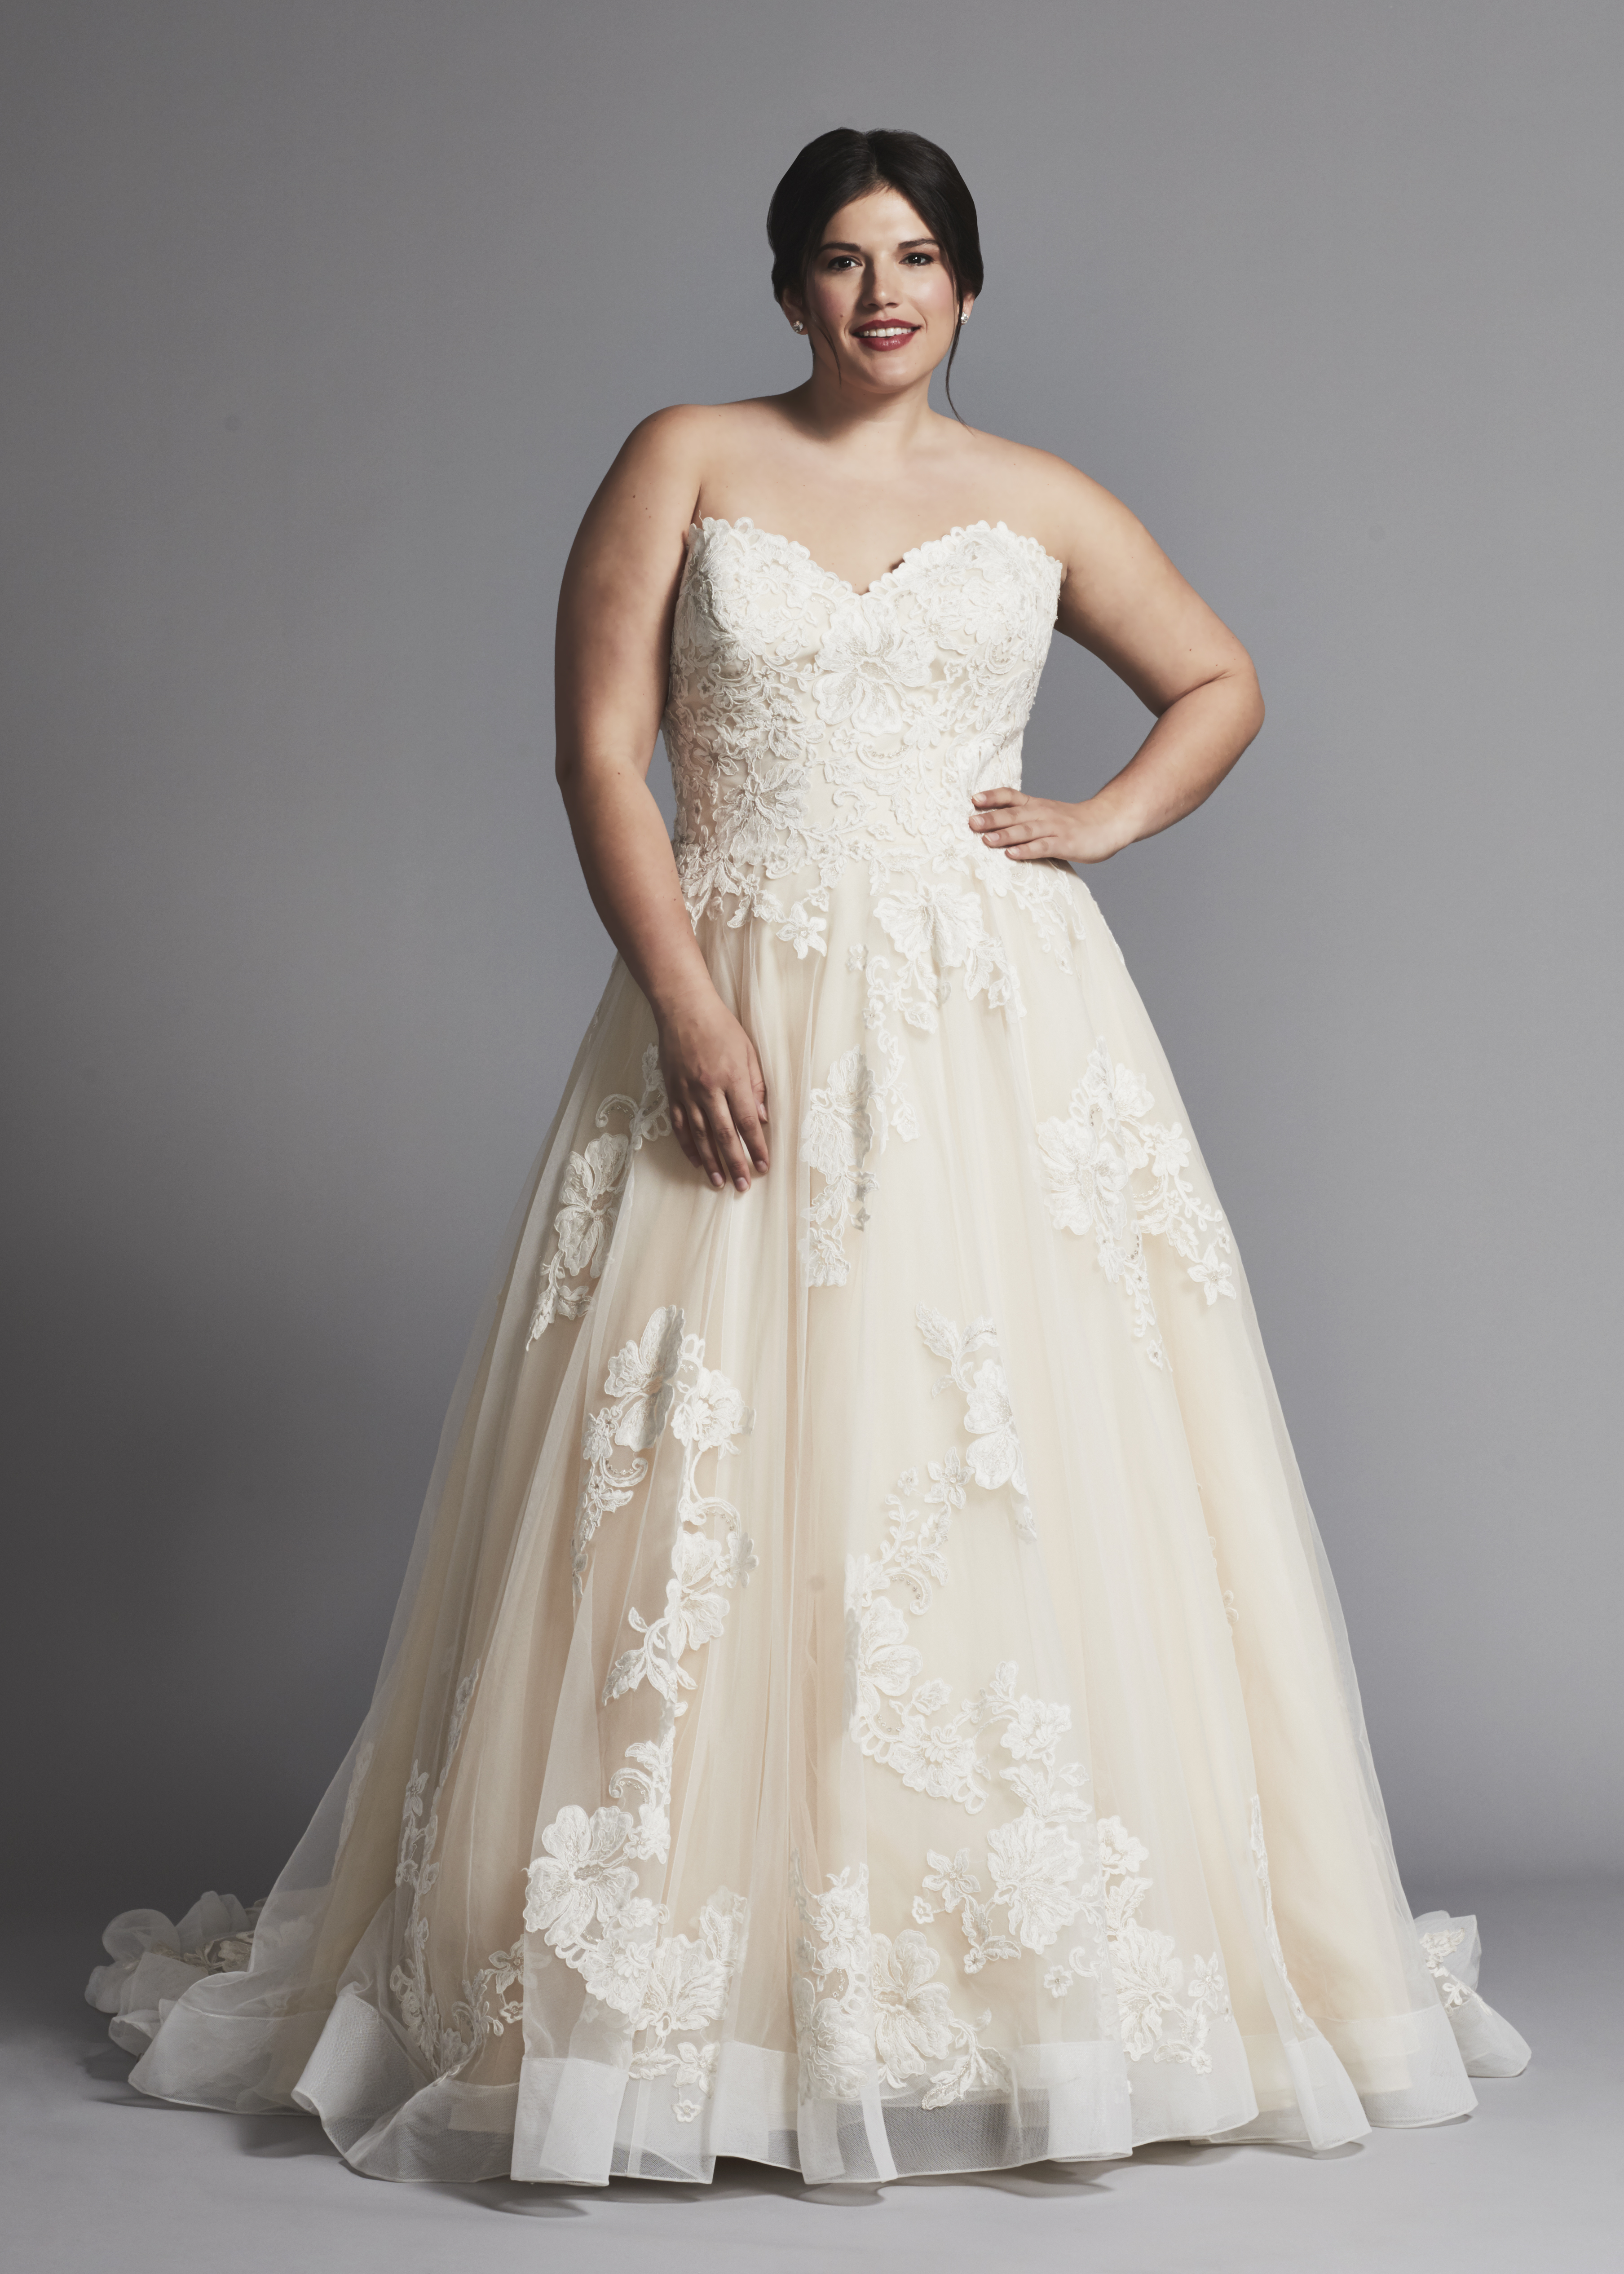 Strapless A Line Lace Wedding Dress With Horsehair Trim Kleinfeld